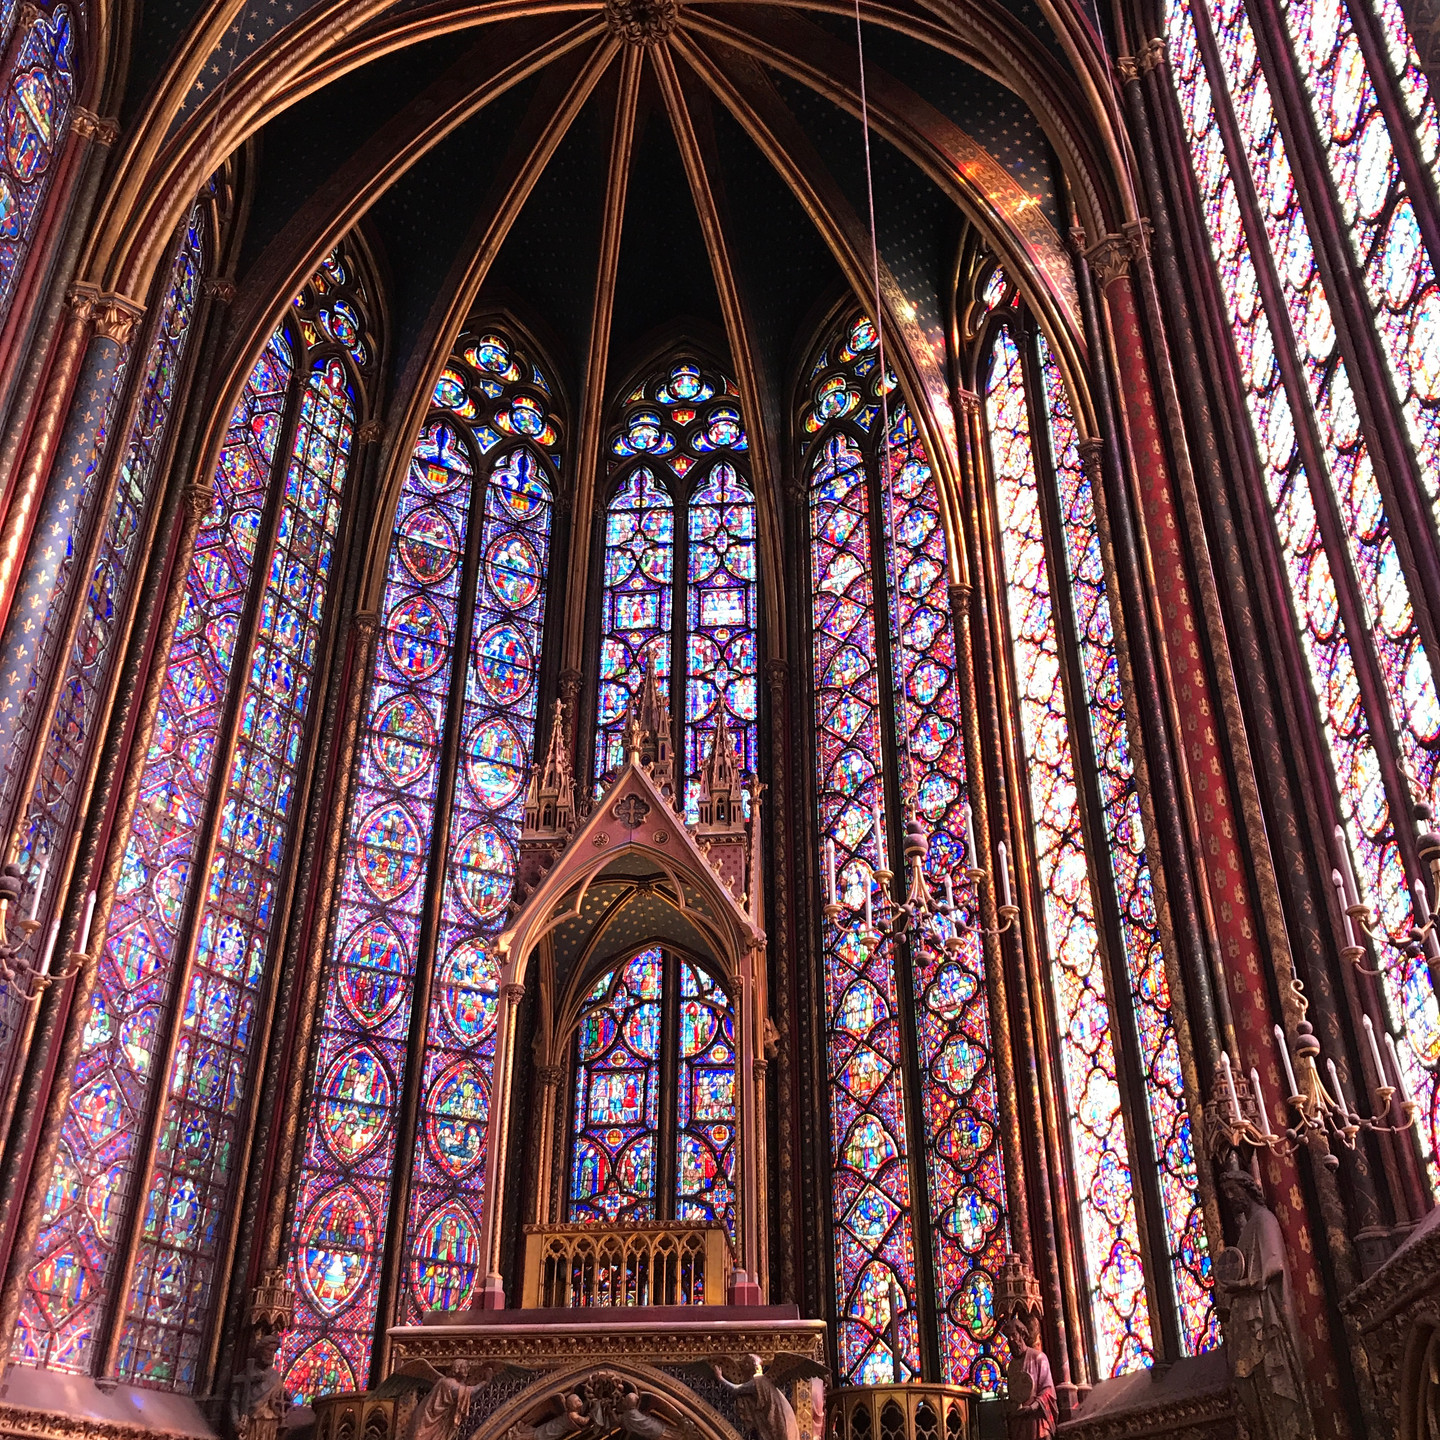 Stained Glass Windows and Lectern at Sainte Chapelle in Paris